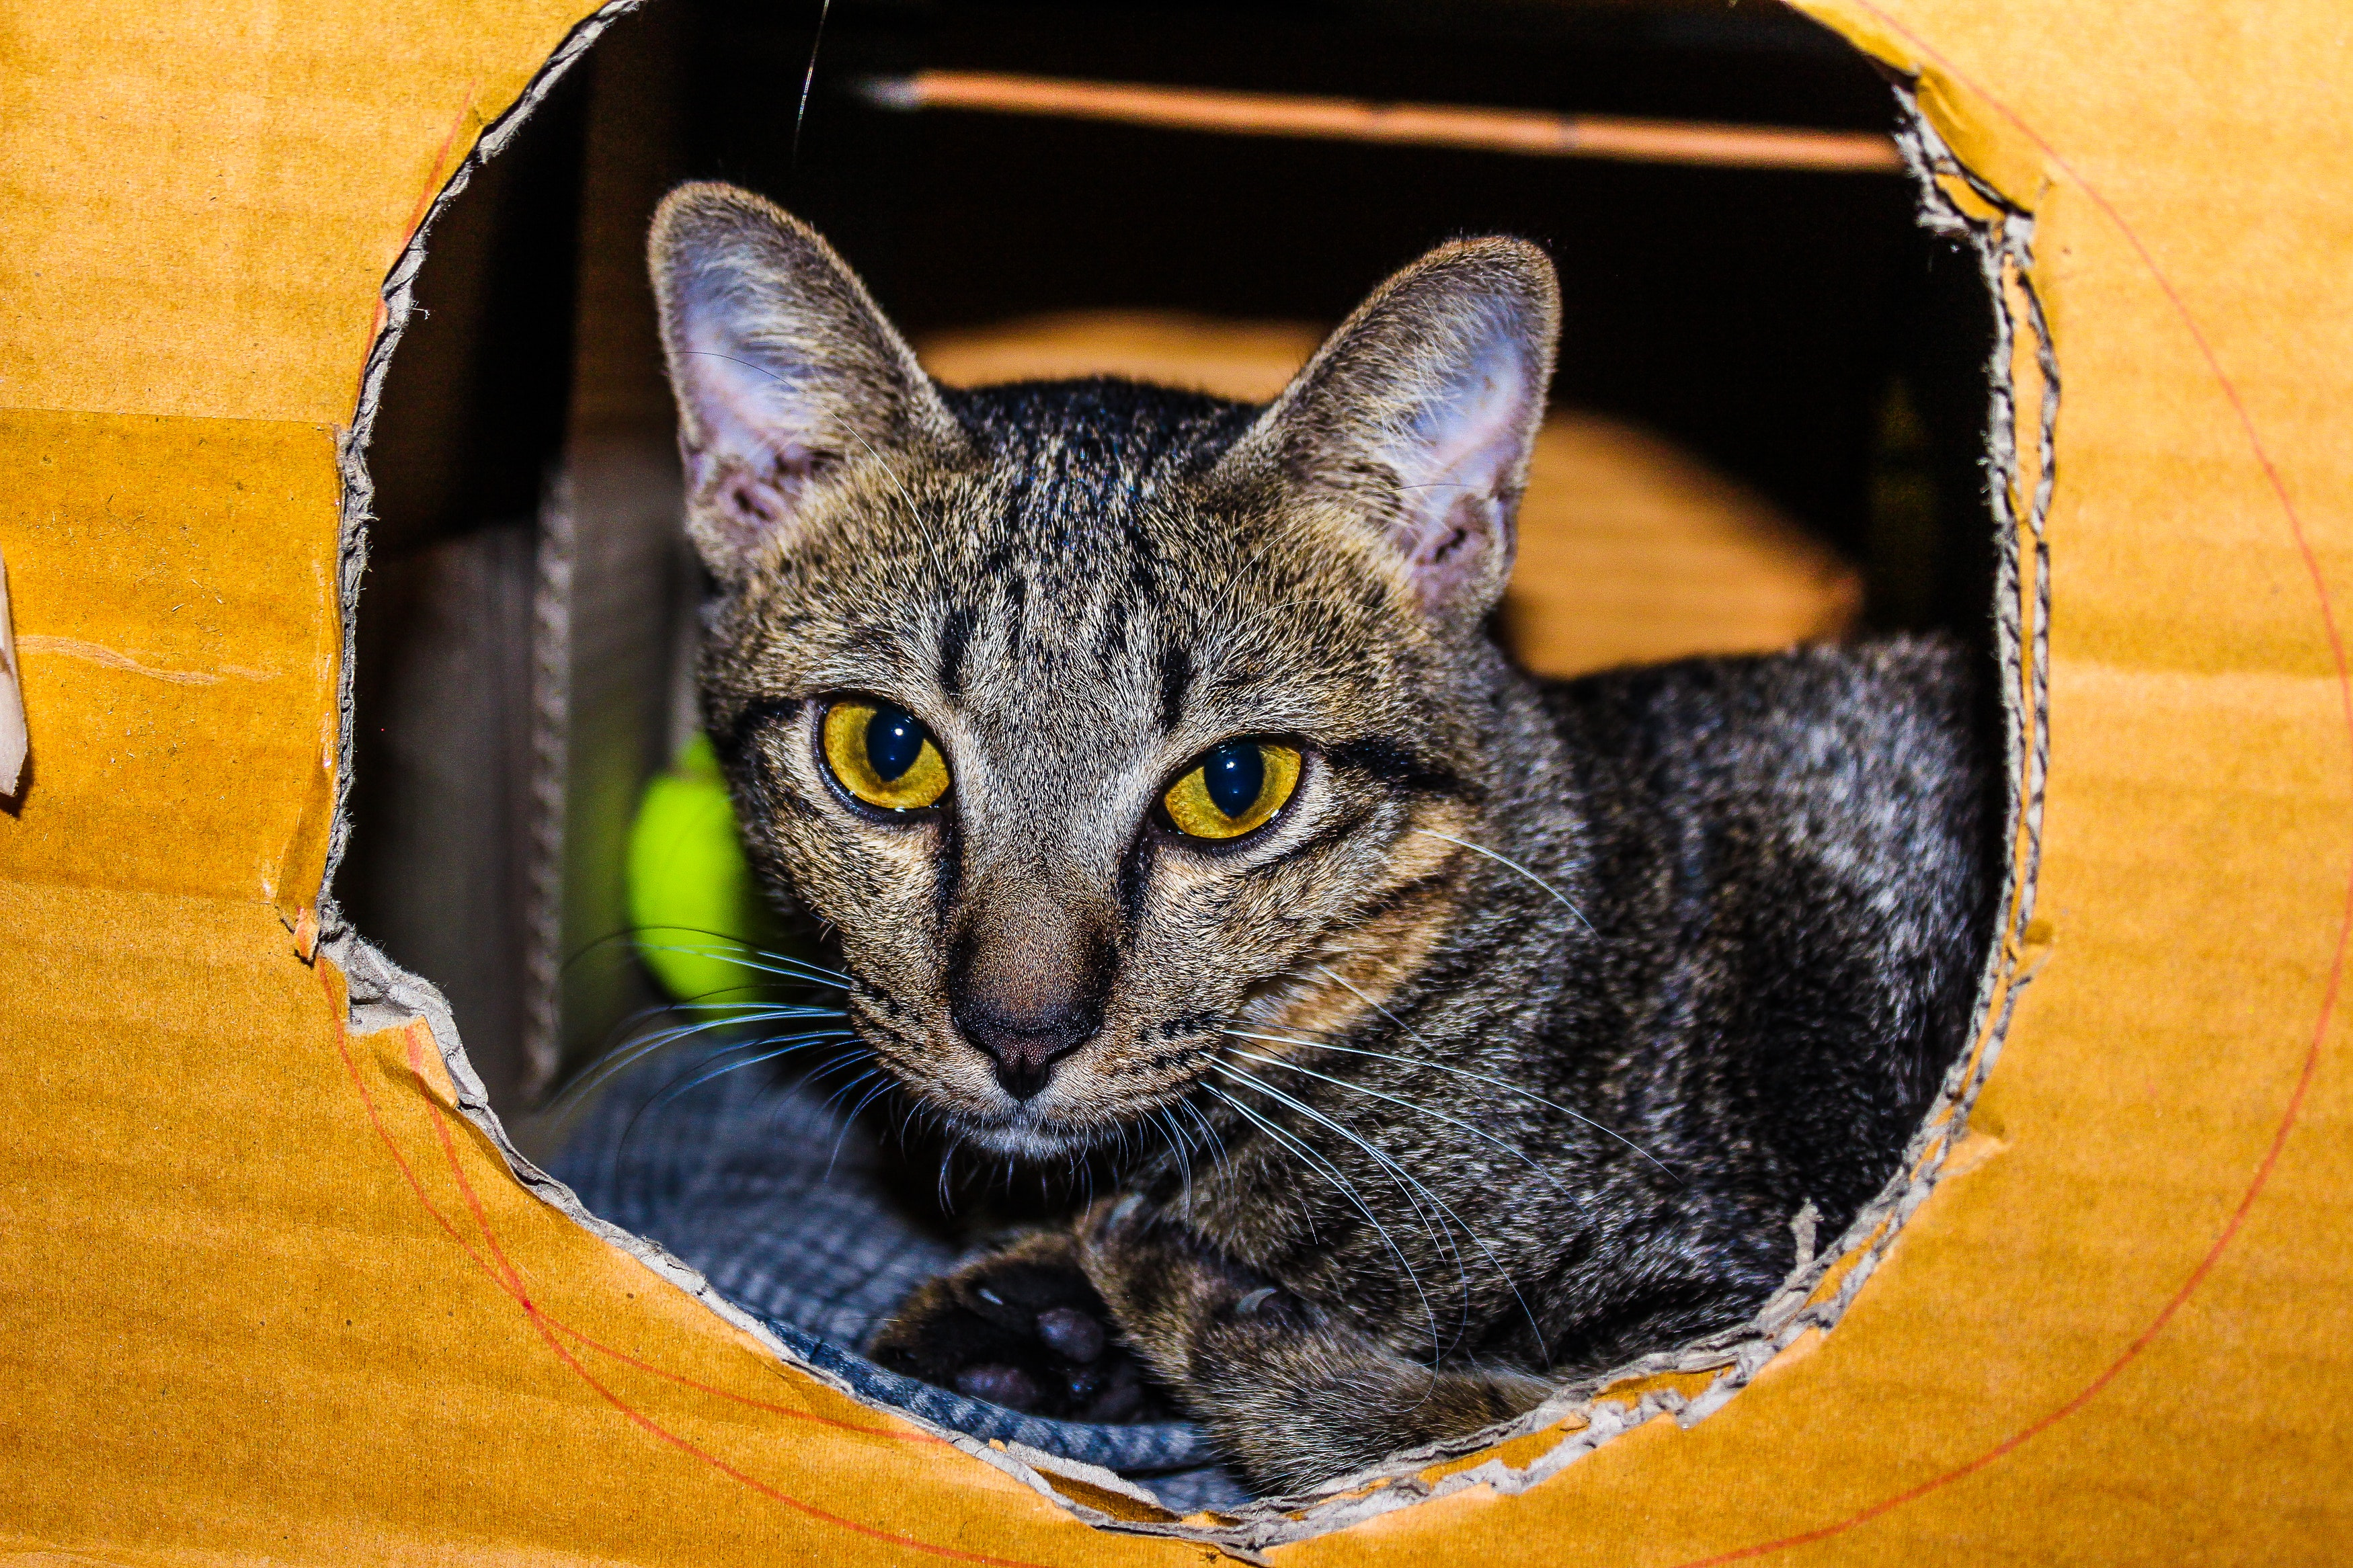 Brown Tabby Cat Inside Cardboard Box, Adorable, Posing, Little, Looking, HQ Photo